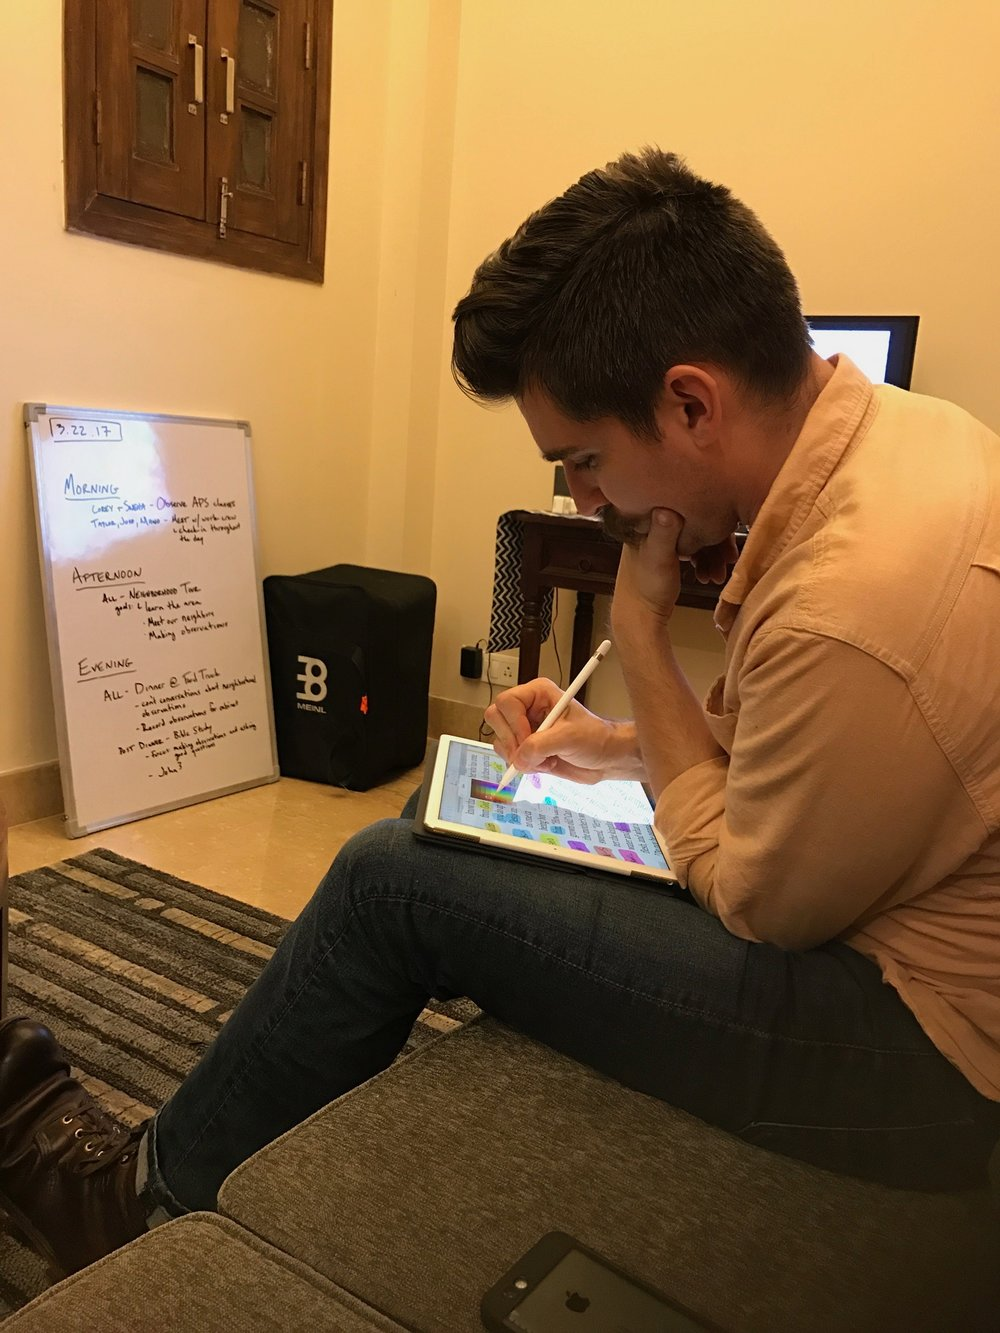 India team member Josh Nava prepares a lesson on biblical studies for our Indian cooperatives. Their ongoing skill in interpreting and applying God's word is what will make them effective ministers. Bible studies are a priority on every trip we take.